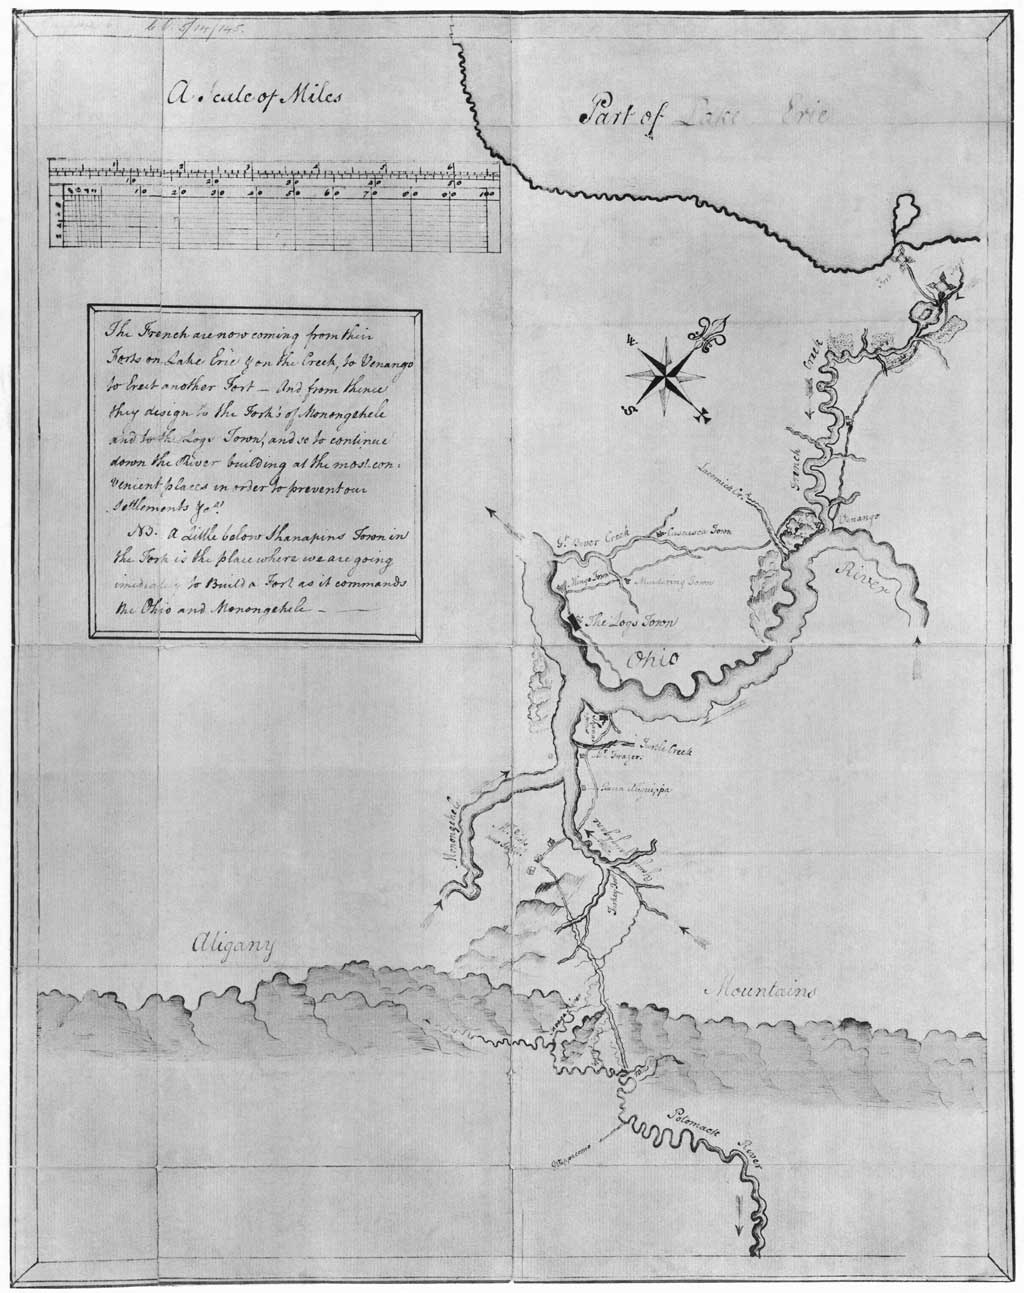 George Washington's hand-drawn map of the Ohio River and surrounding region containing notes on French intentions, 1753 or 1754